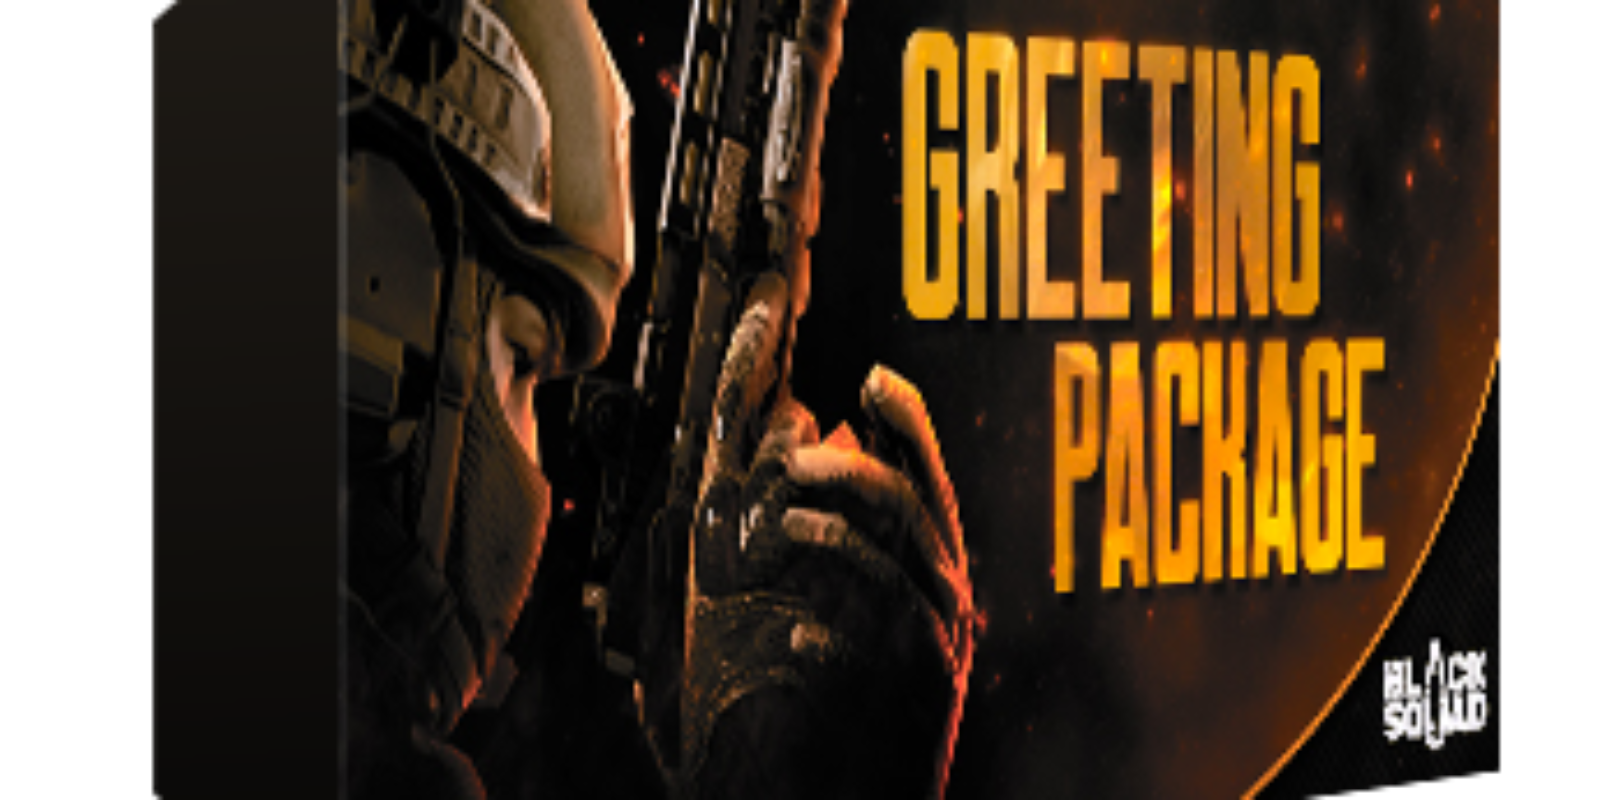 Black Squad: Greeting Package Steam Key Giveaway [ENDED